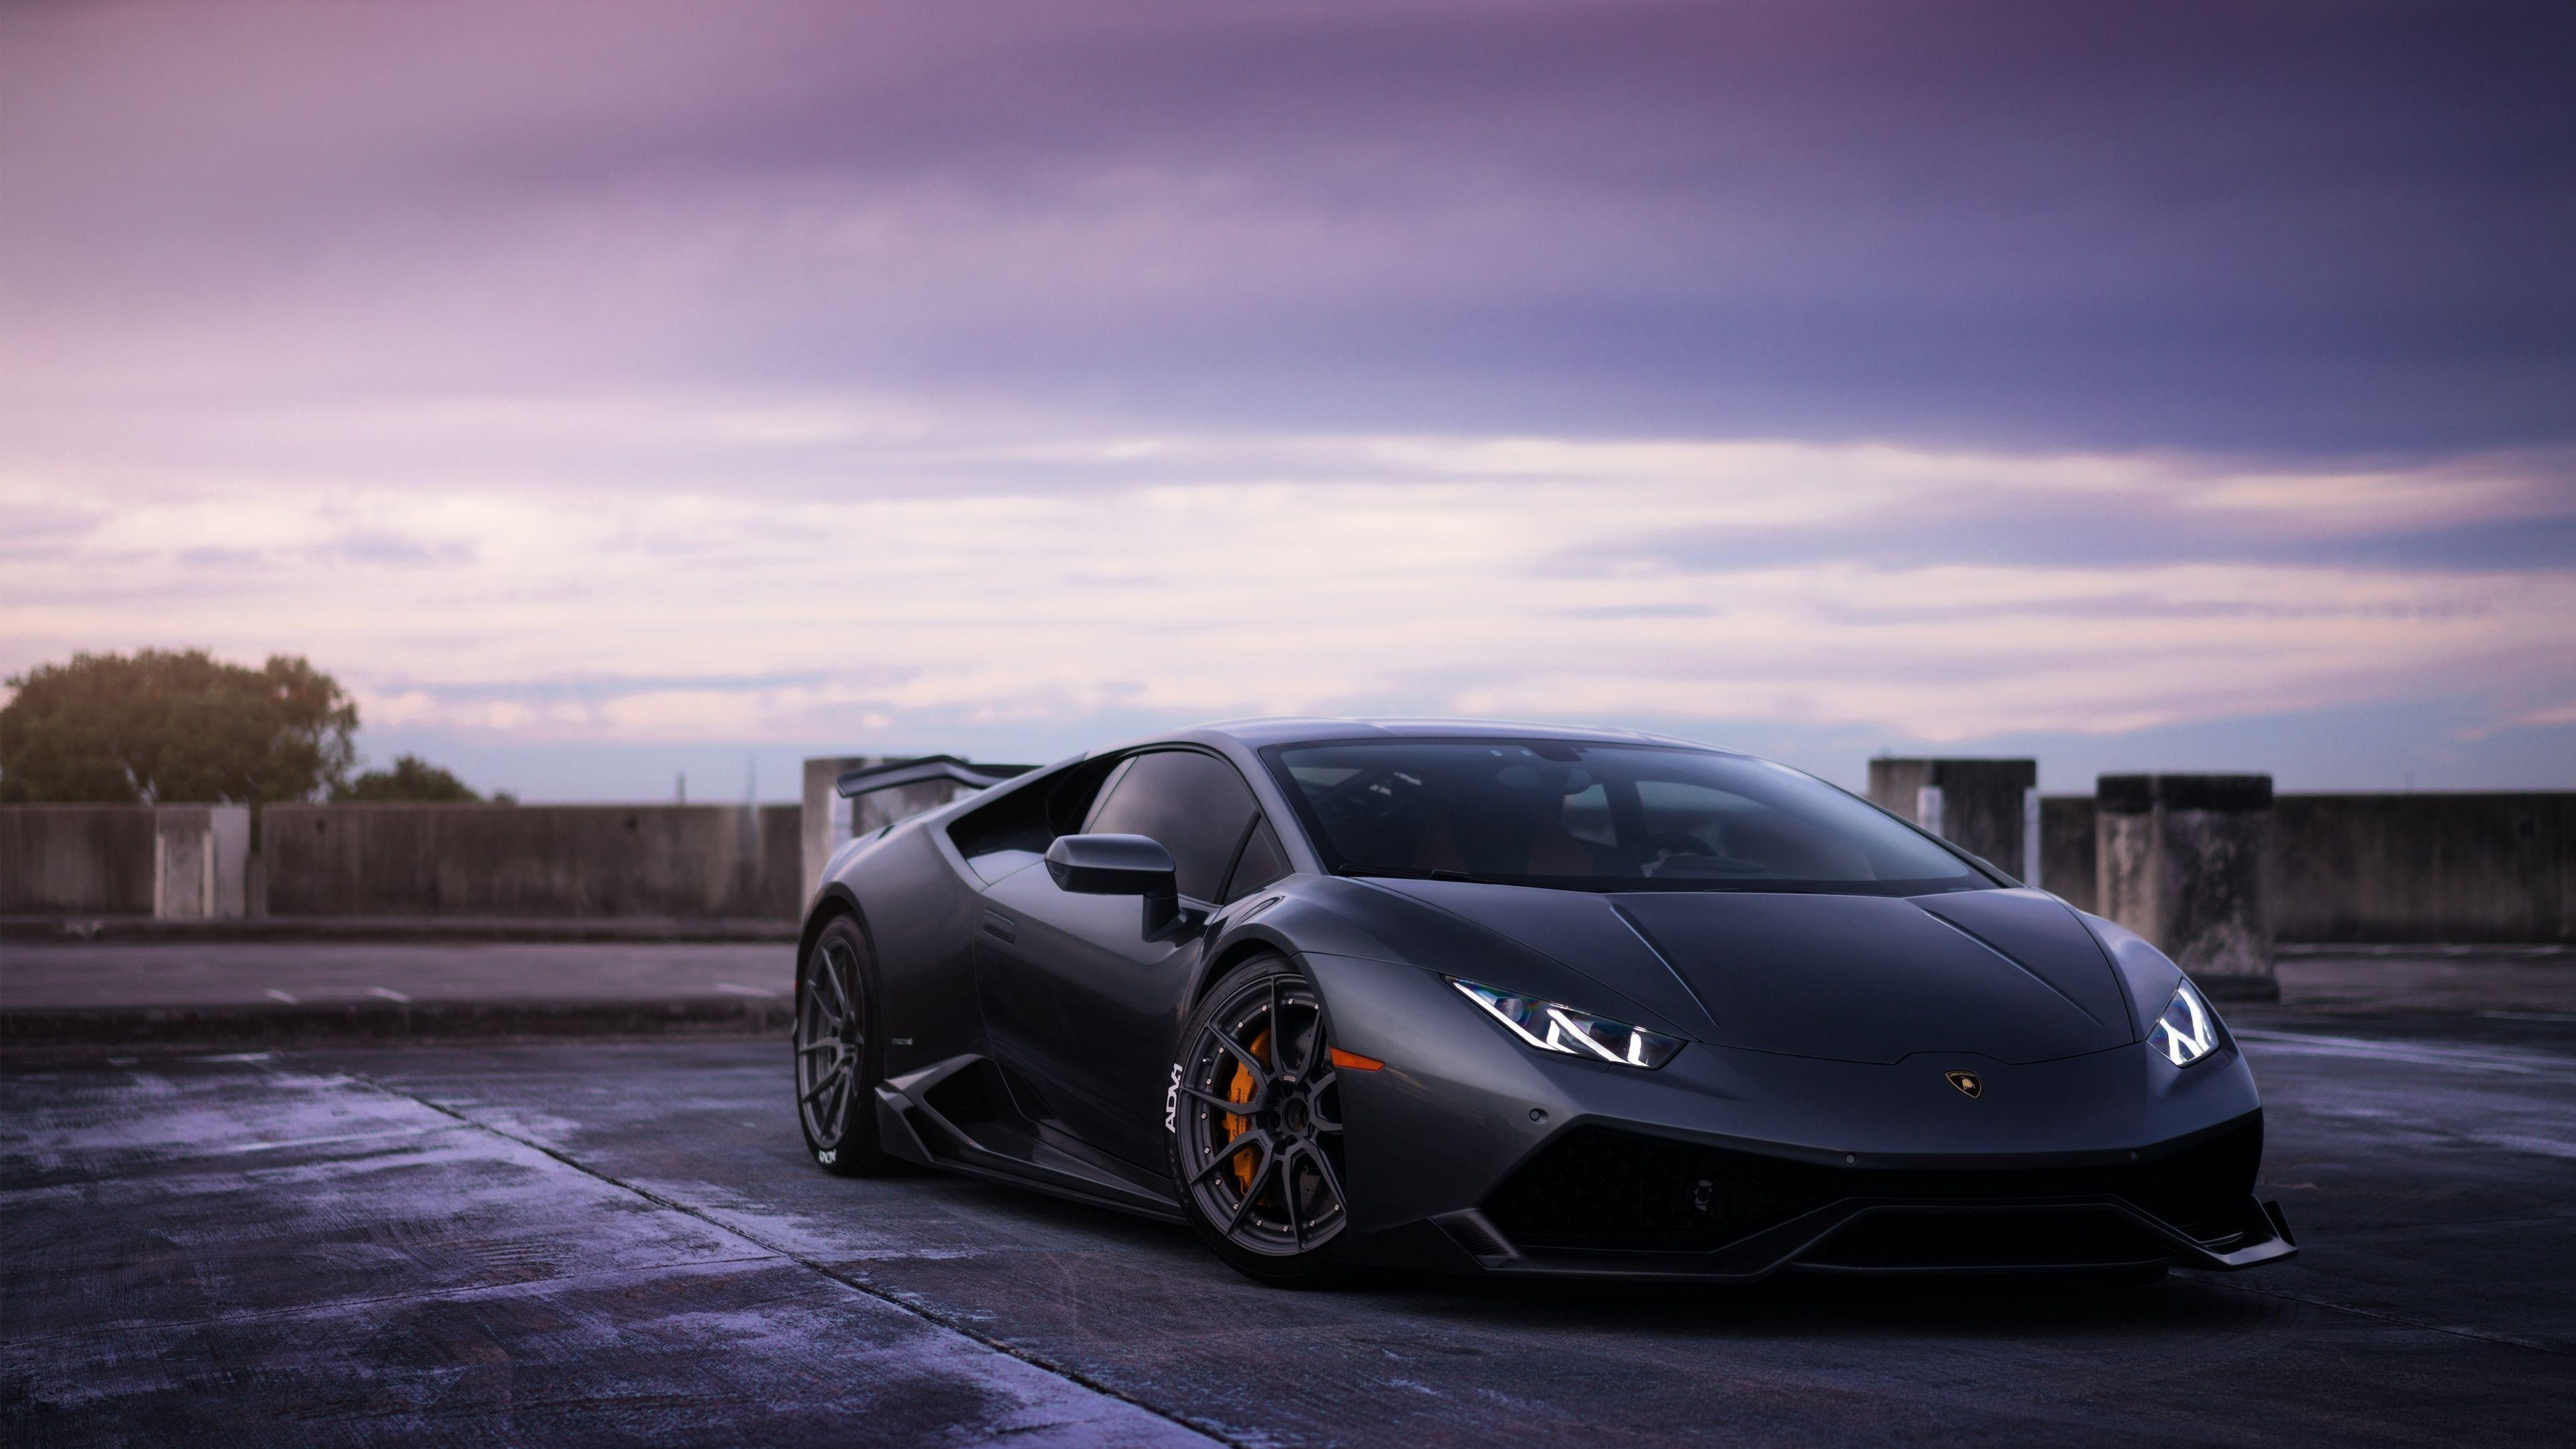 Lamborghini Huracan Wallpapers , Top Free Lamborghini